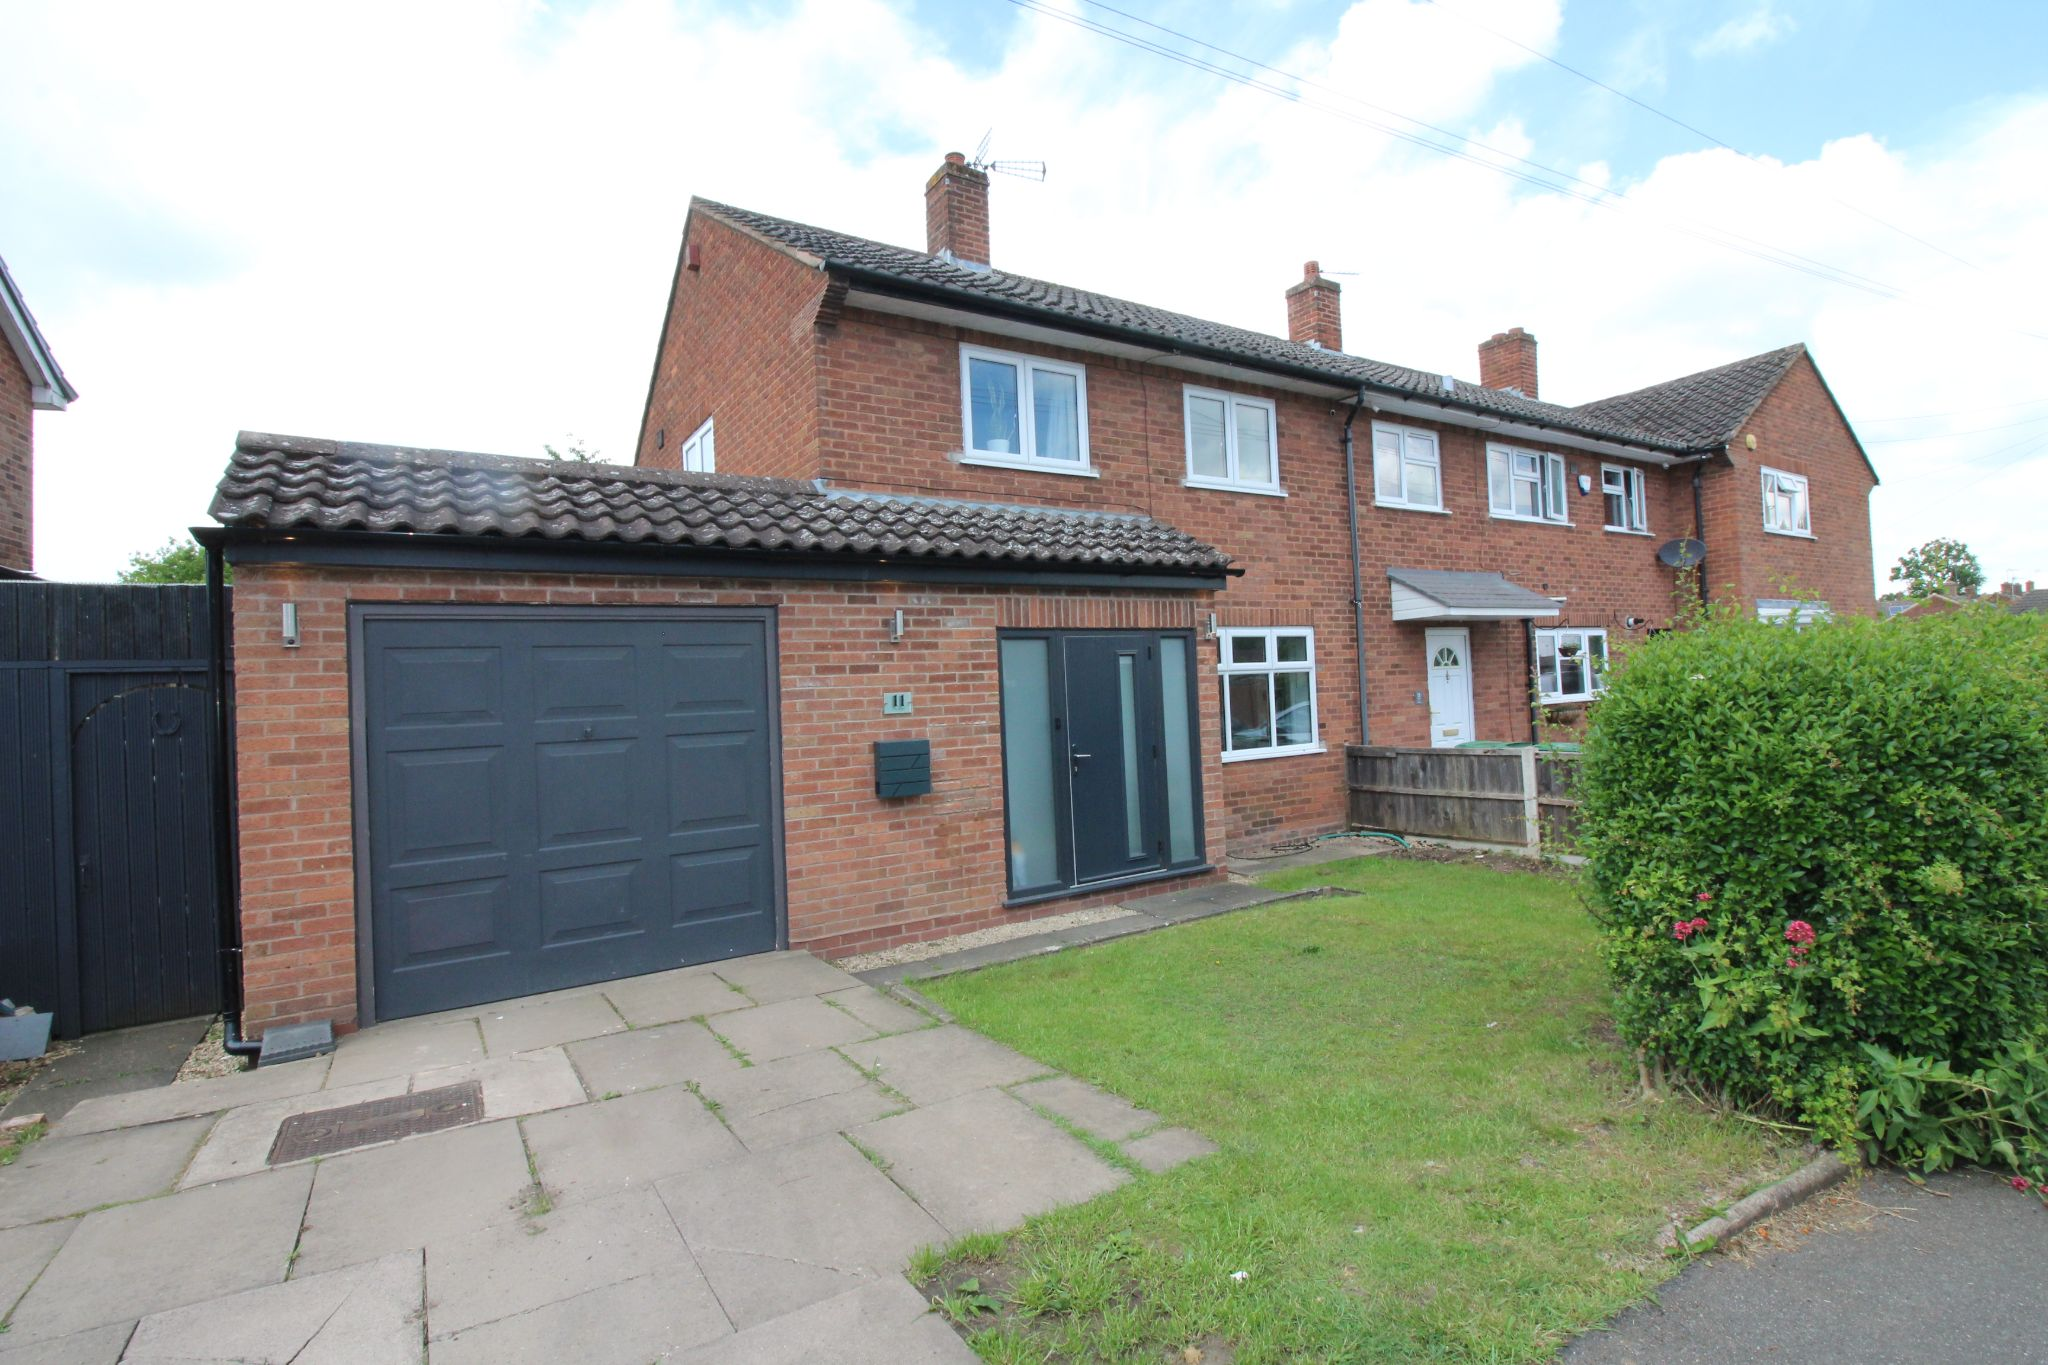 2 bedroom end terraced house For Sale in Birmingham - Photograph 1.